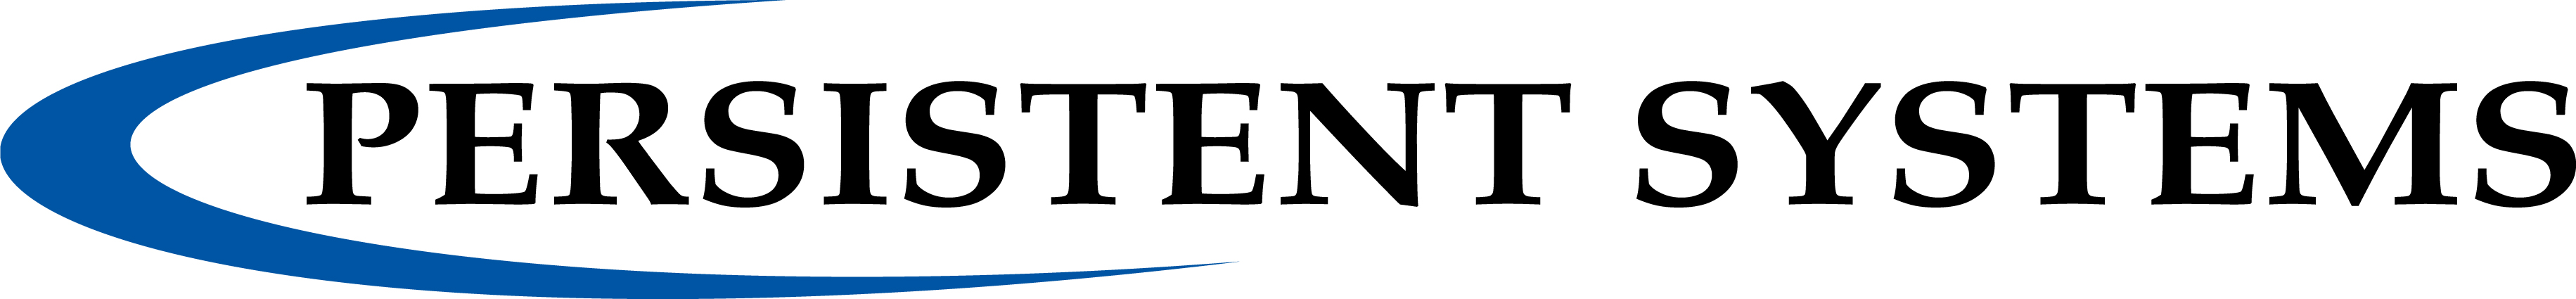 Persistent Systems, LLC - Lunch Sponsor